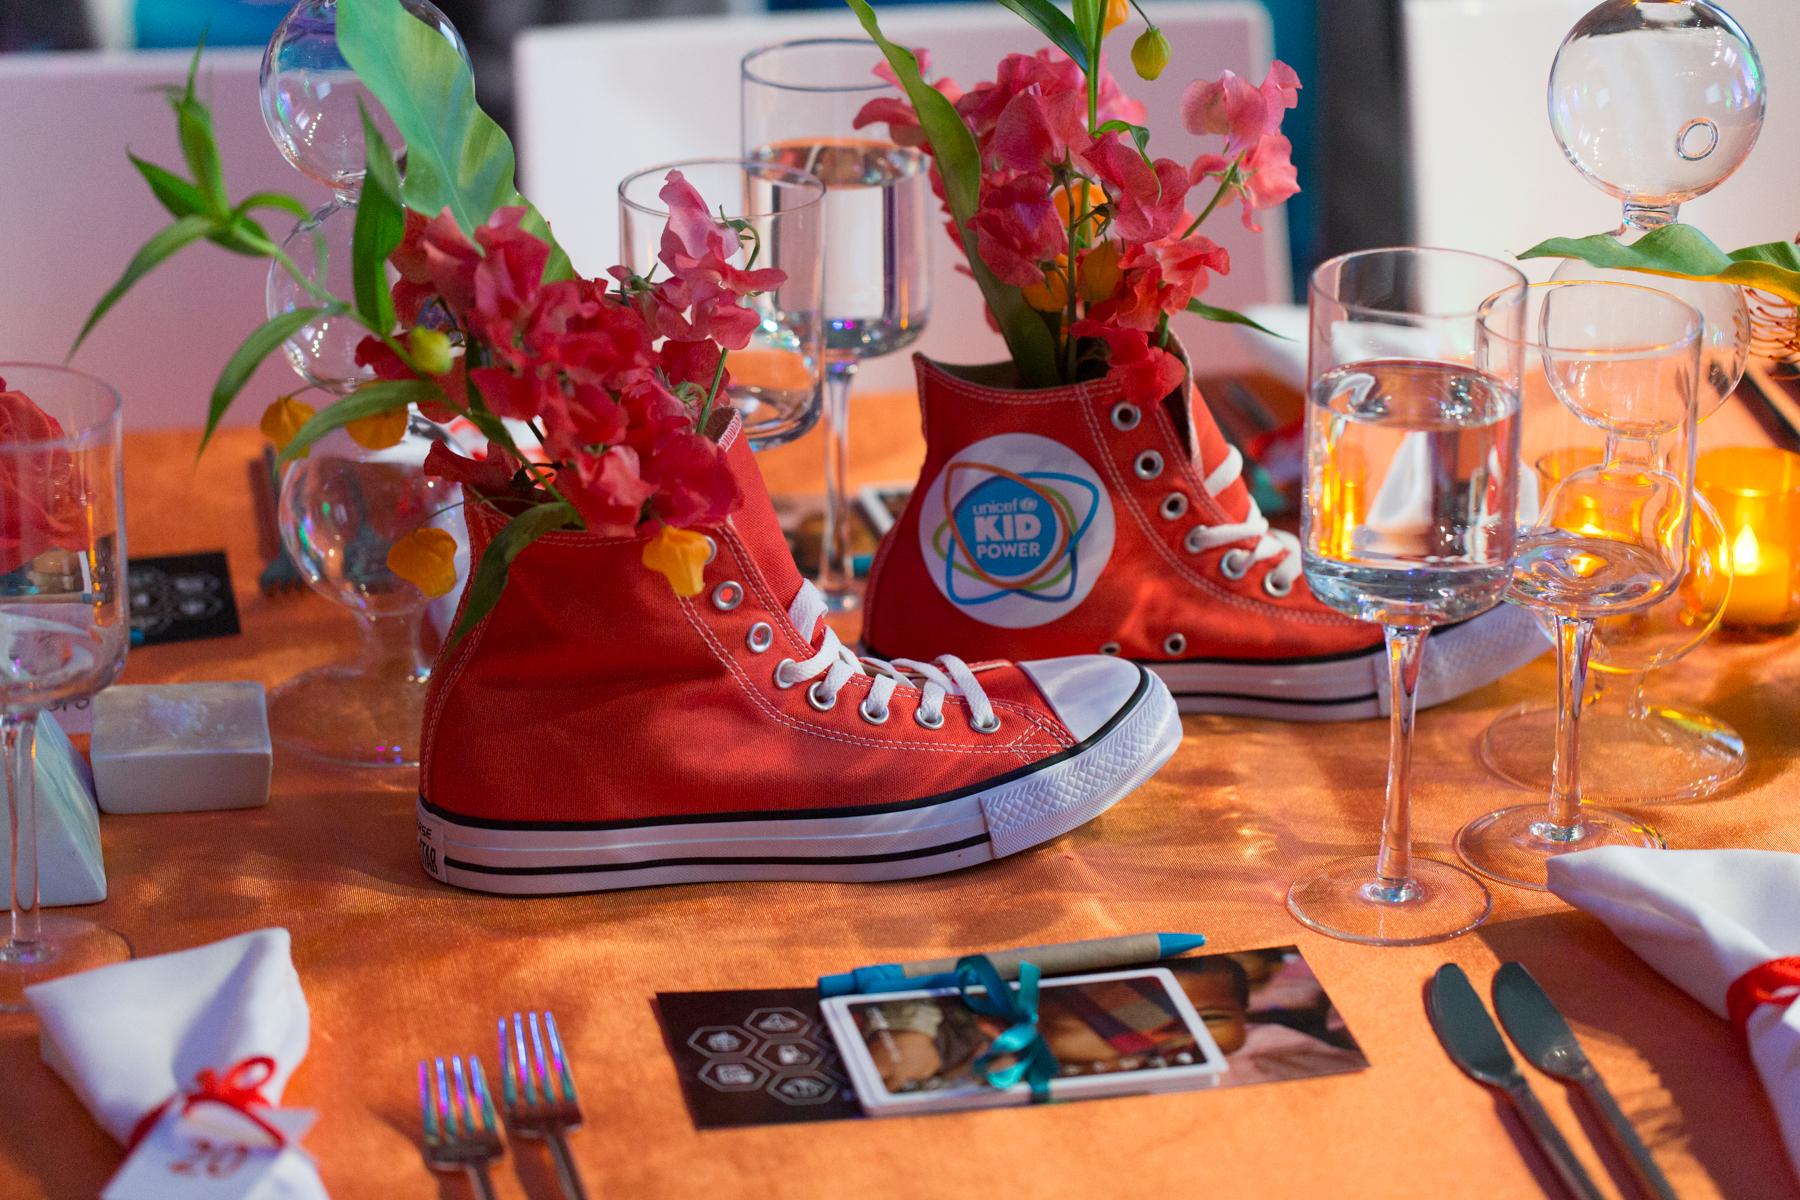 Inventive centerpieces by Rafanelli Events at the 2016 UNICEF Children's Champion Award Dinner.  ©Michael Blanchard Photography